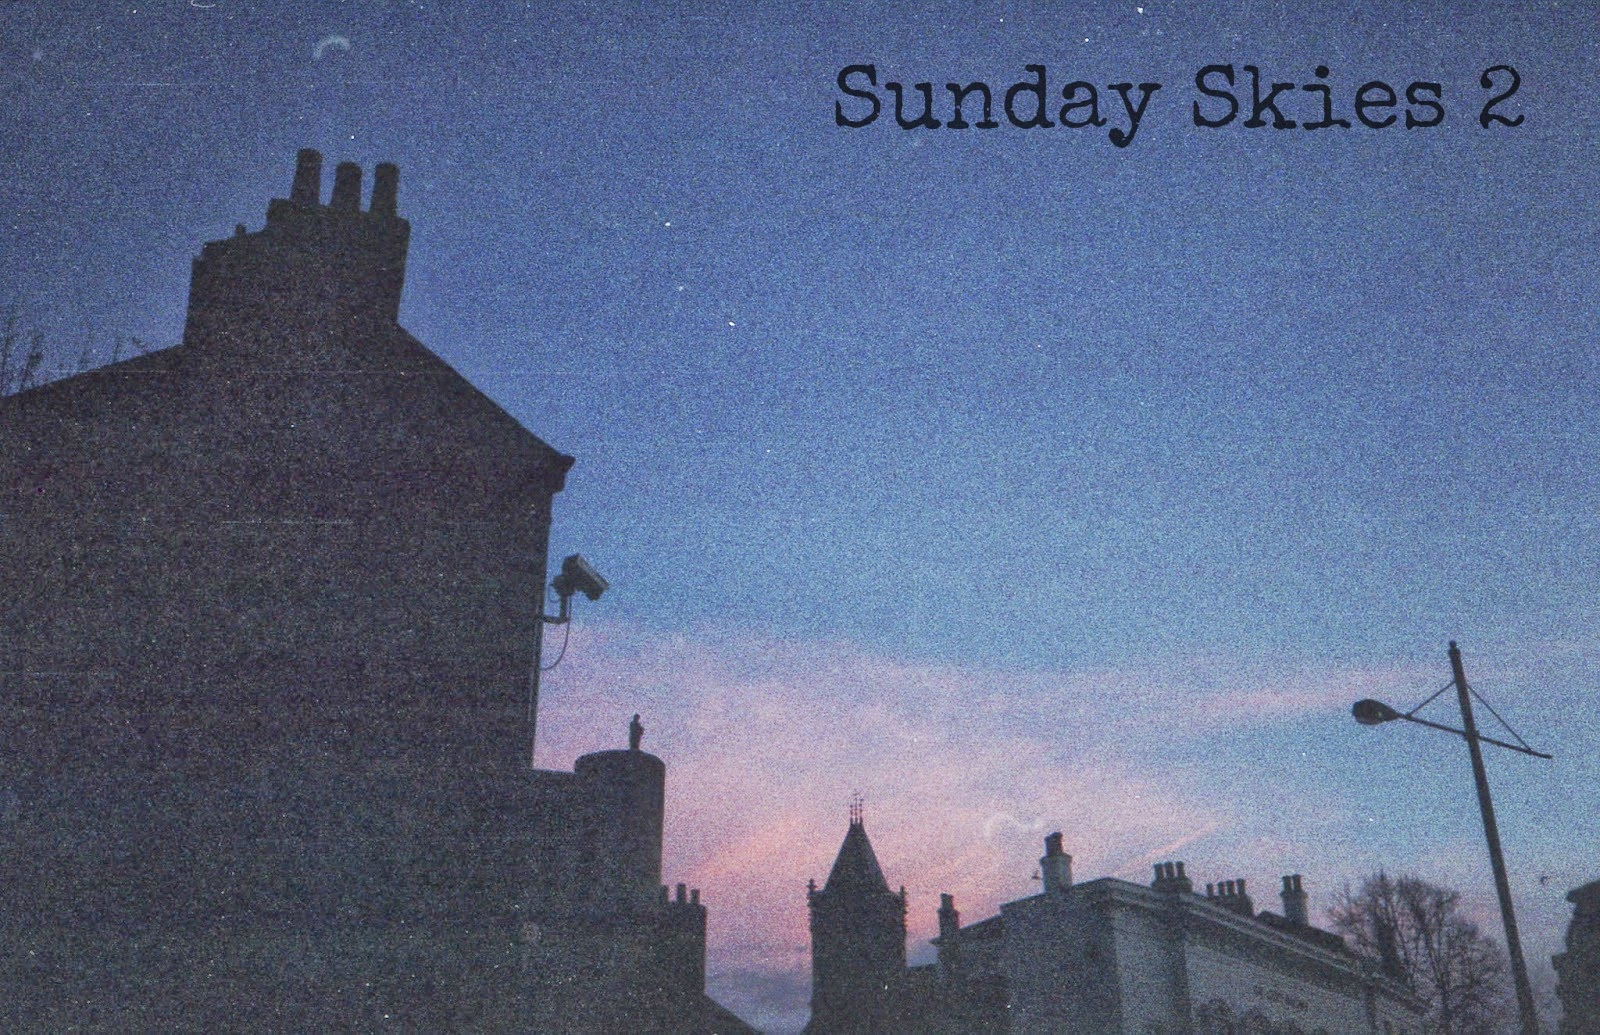 http://talesonfilm.blogspot.co.uk/2014/03/sunday-skies.html